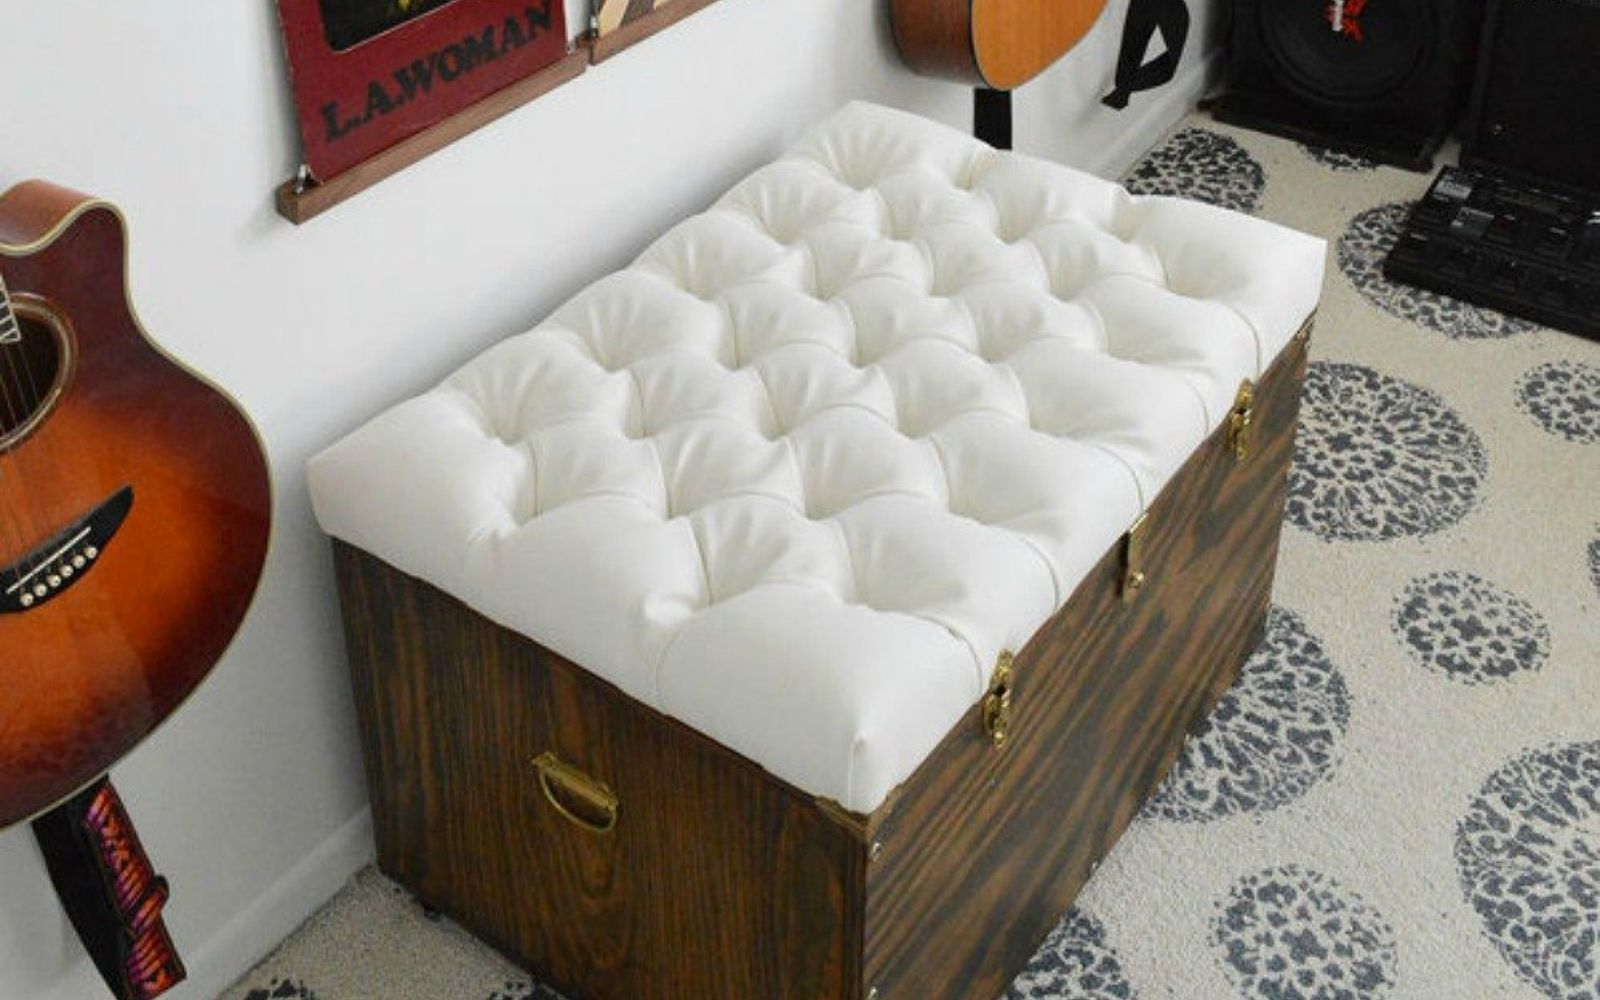 s 12 gorgeous ottoman ideas that will make you want to put your feet up, painted furniture, Create a tufted ottoman chest seat